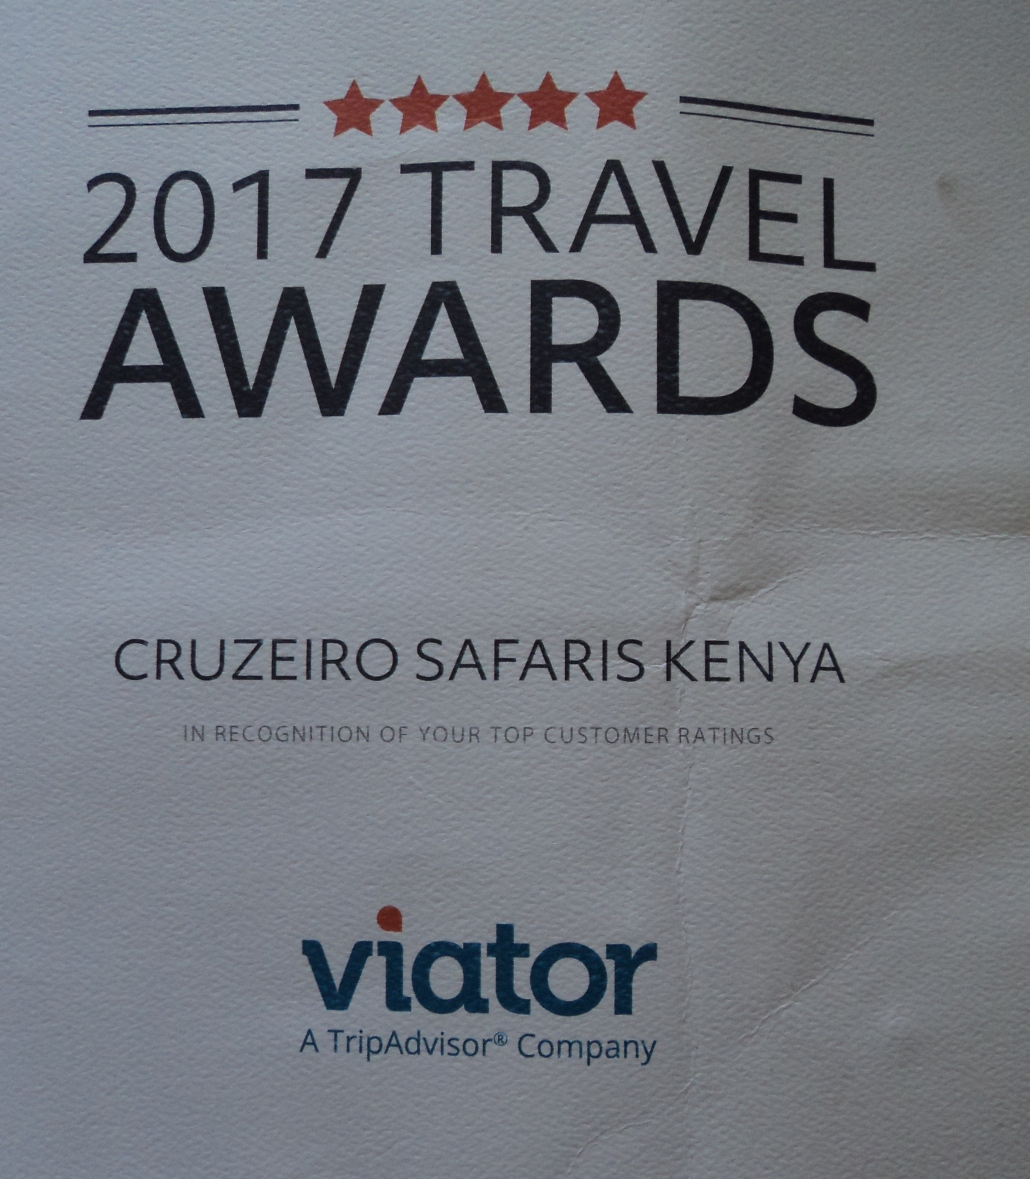 Top Travel Awards to Cruzeiro Safaris Kenya - Nairobi